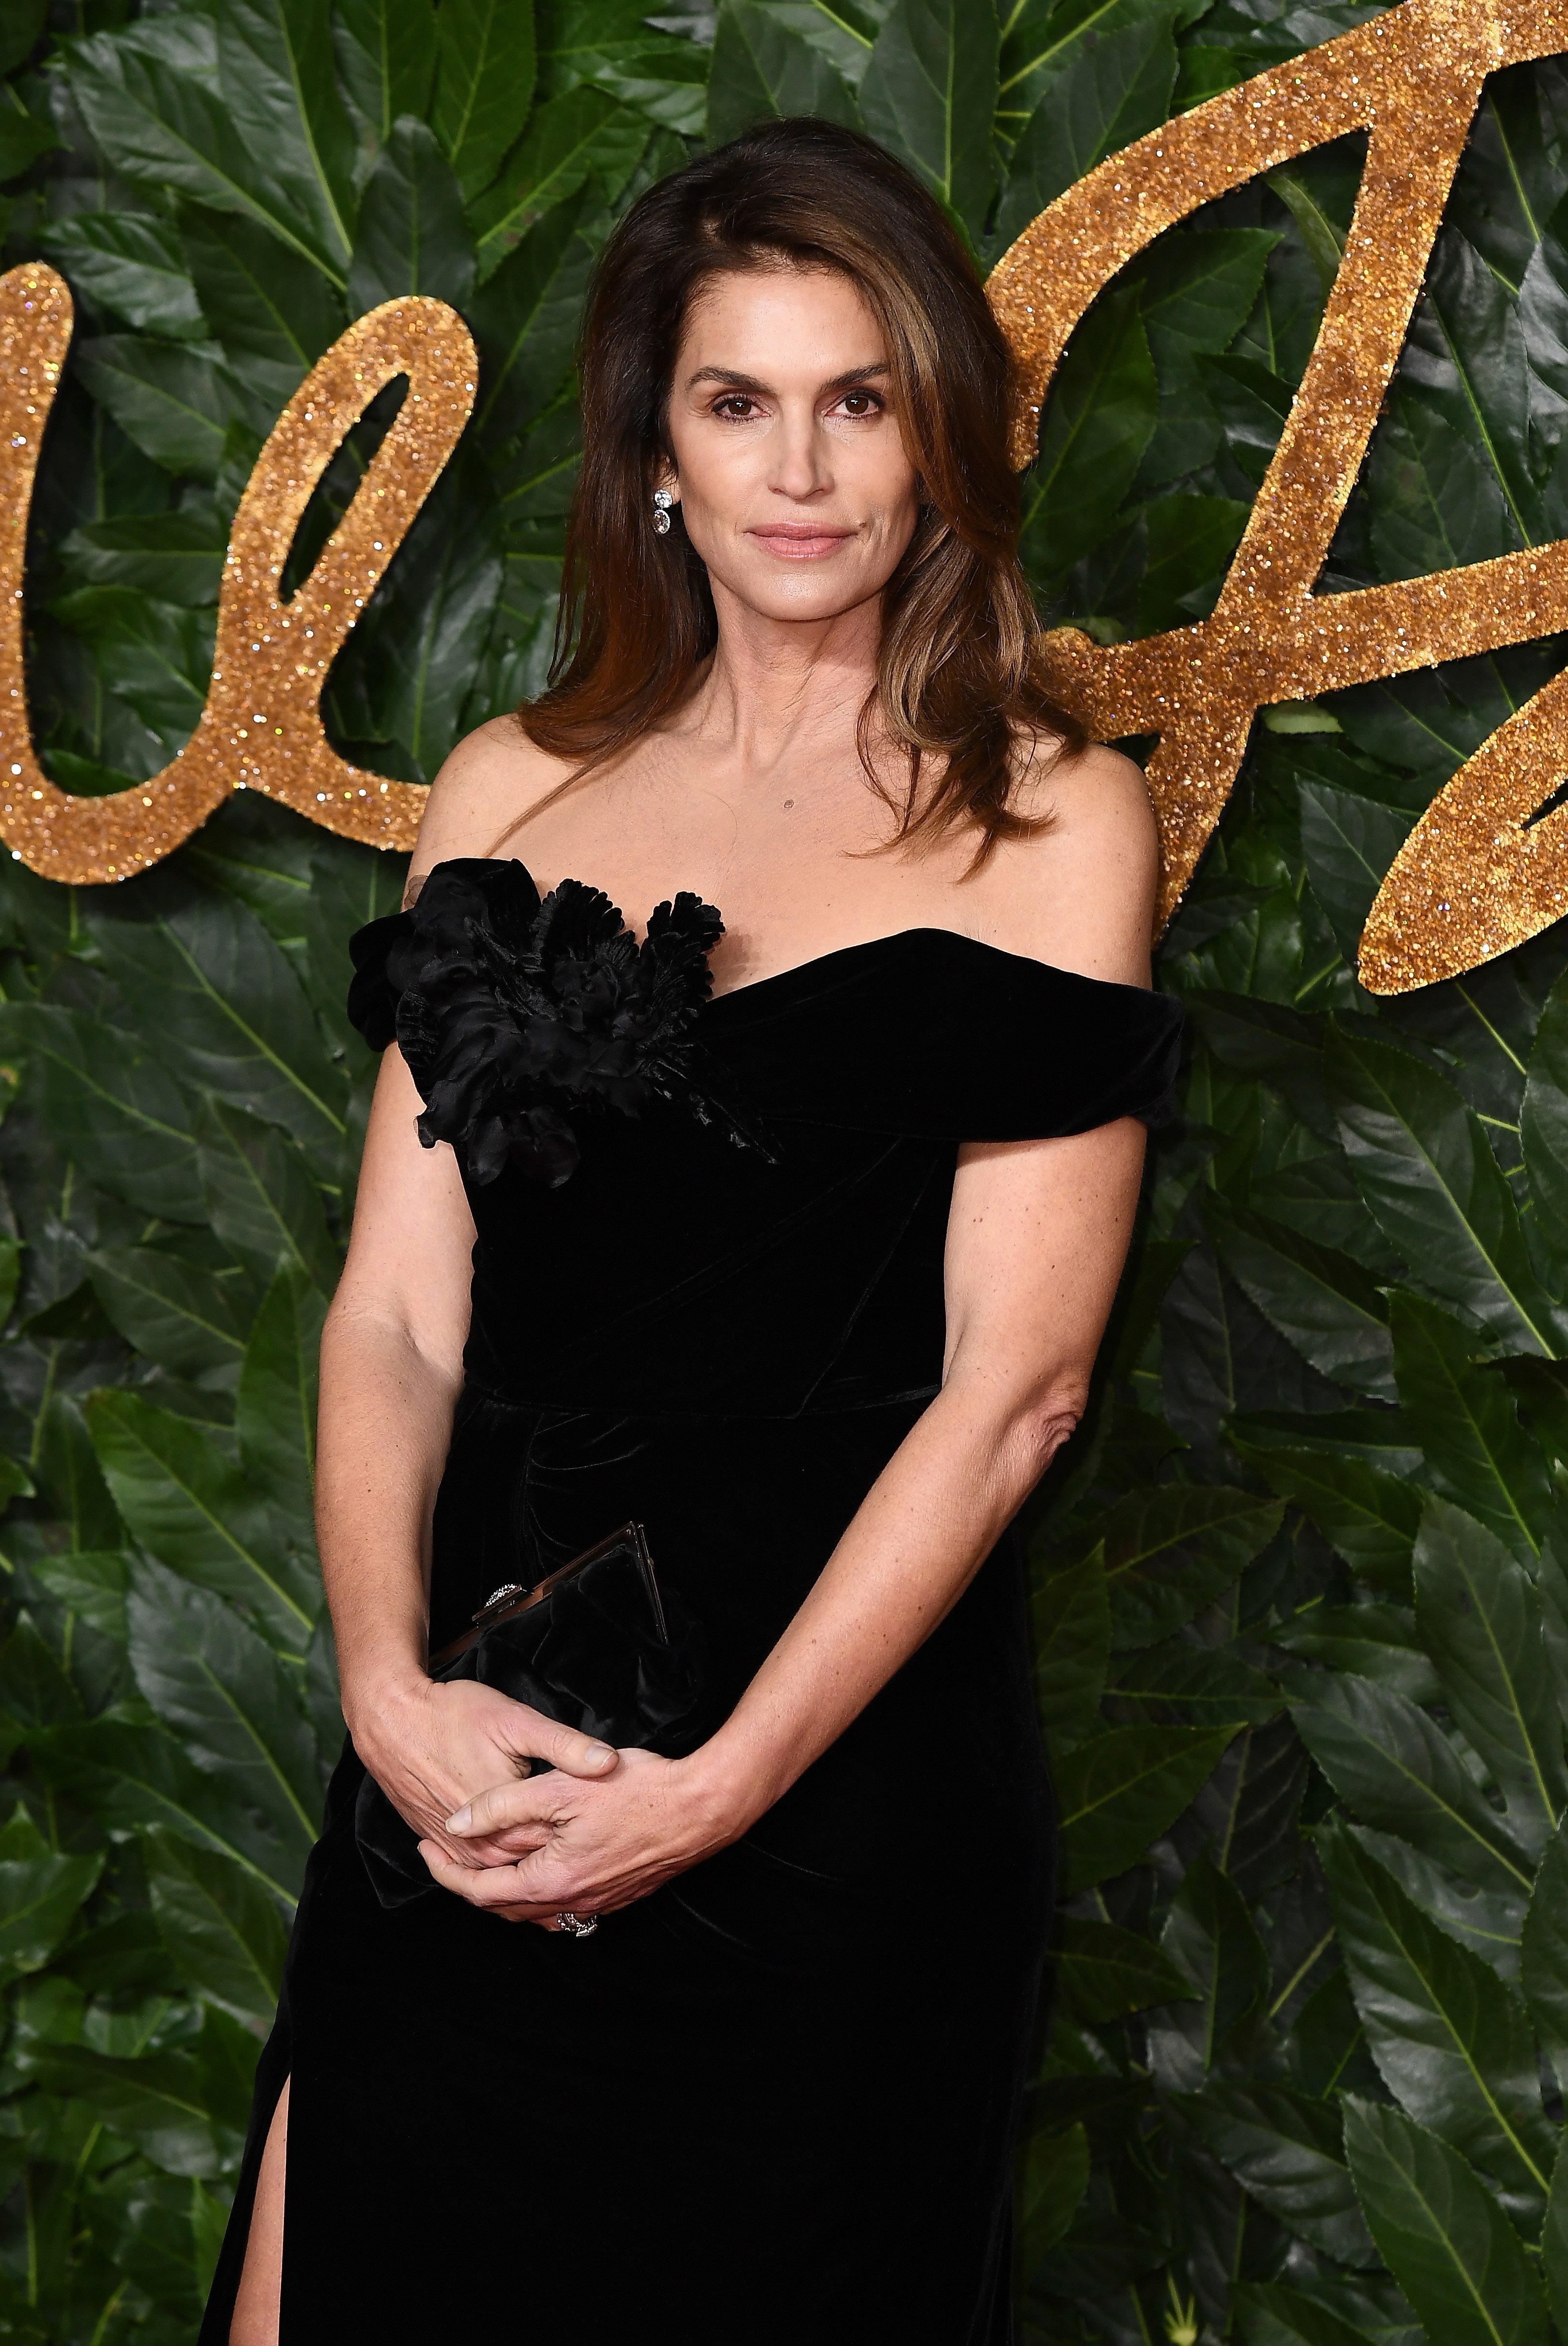 Cindy Crawford arrives attends The Fashion Awards 2018 at Royal Albert Hall on December 10, 2018 in London, England. | Photo: Getty Images